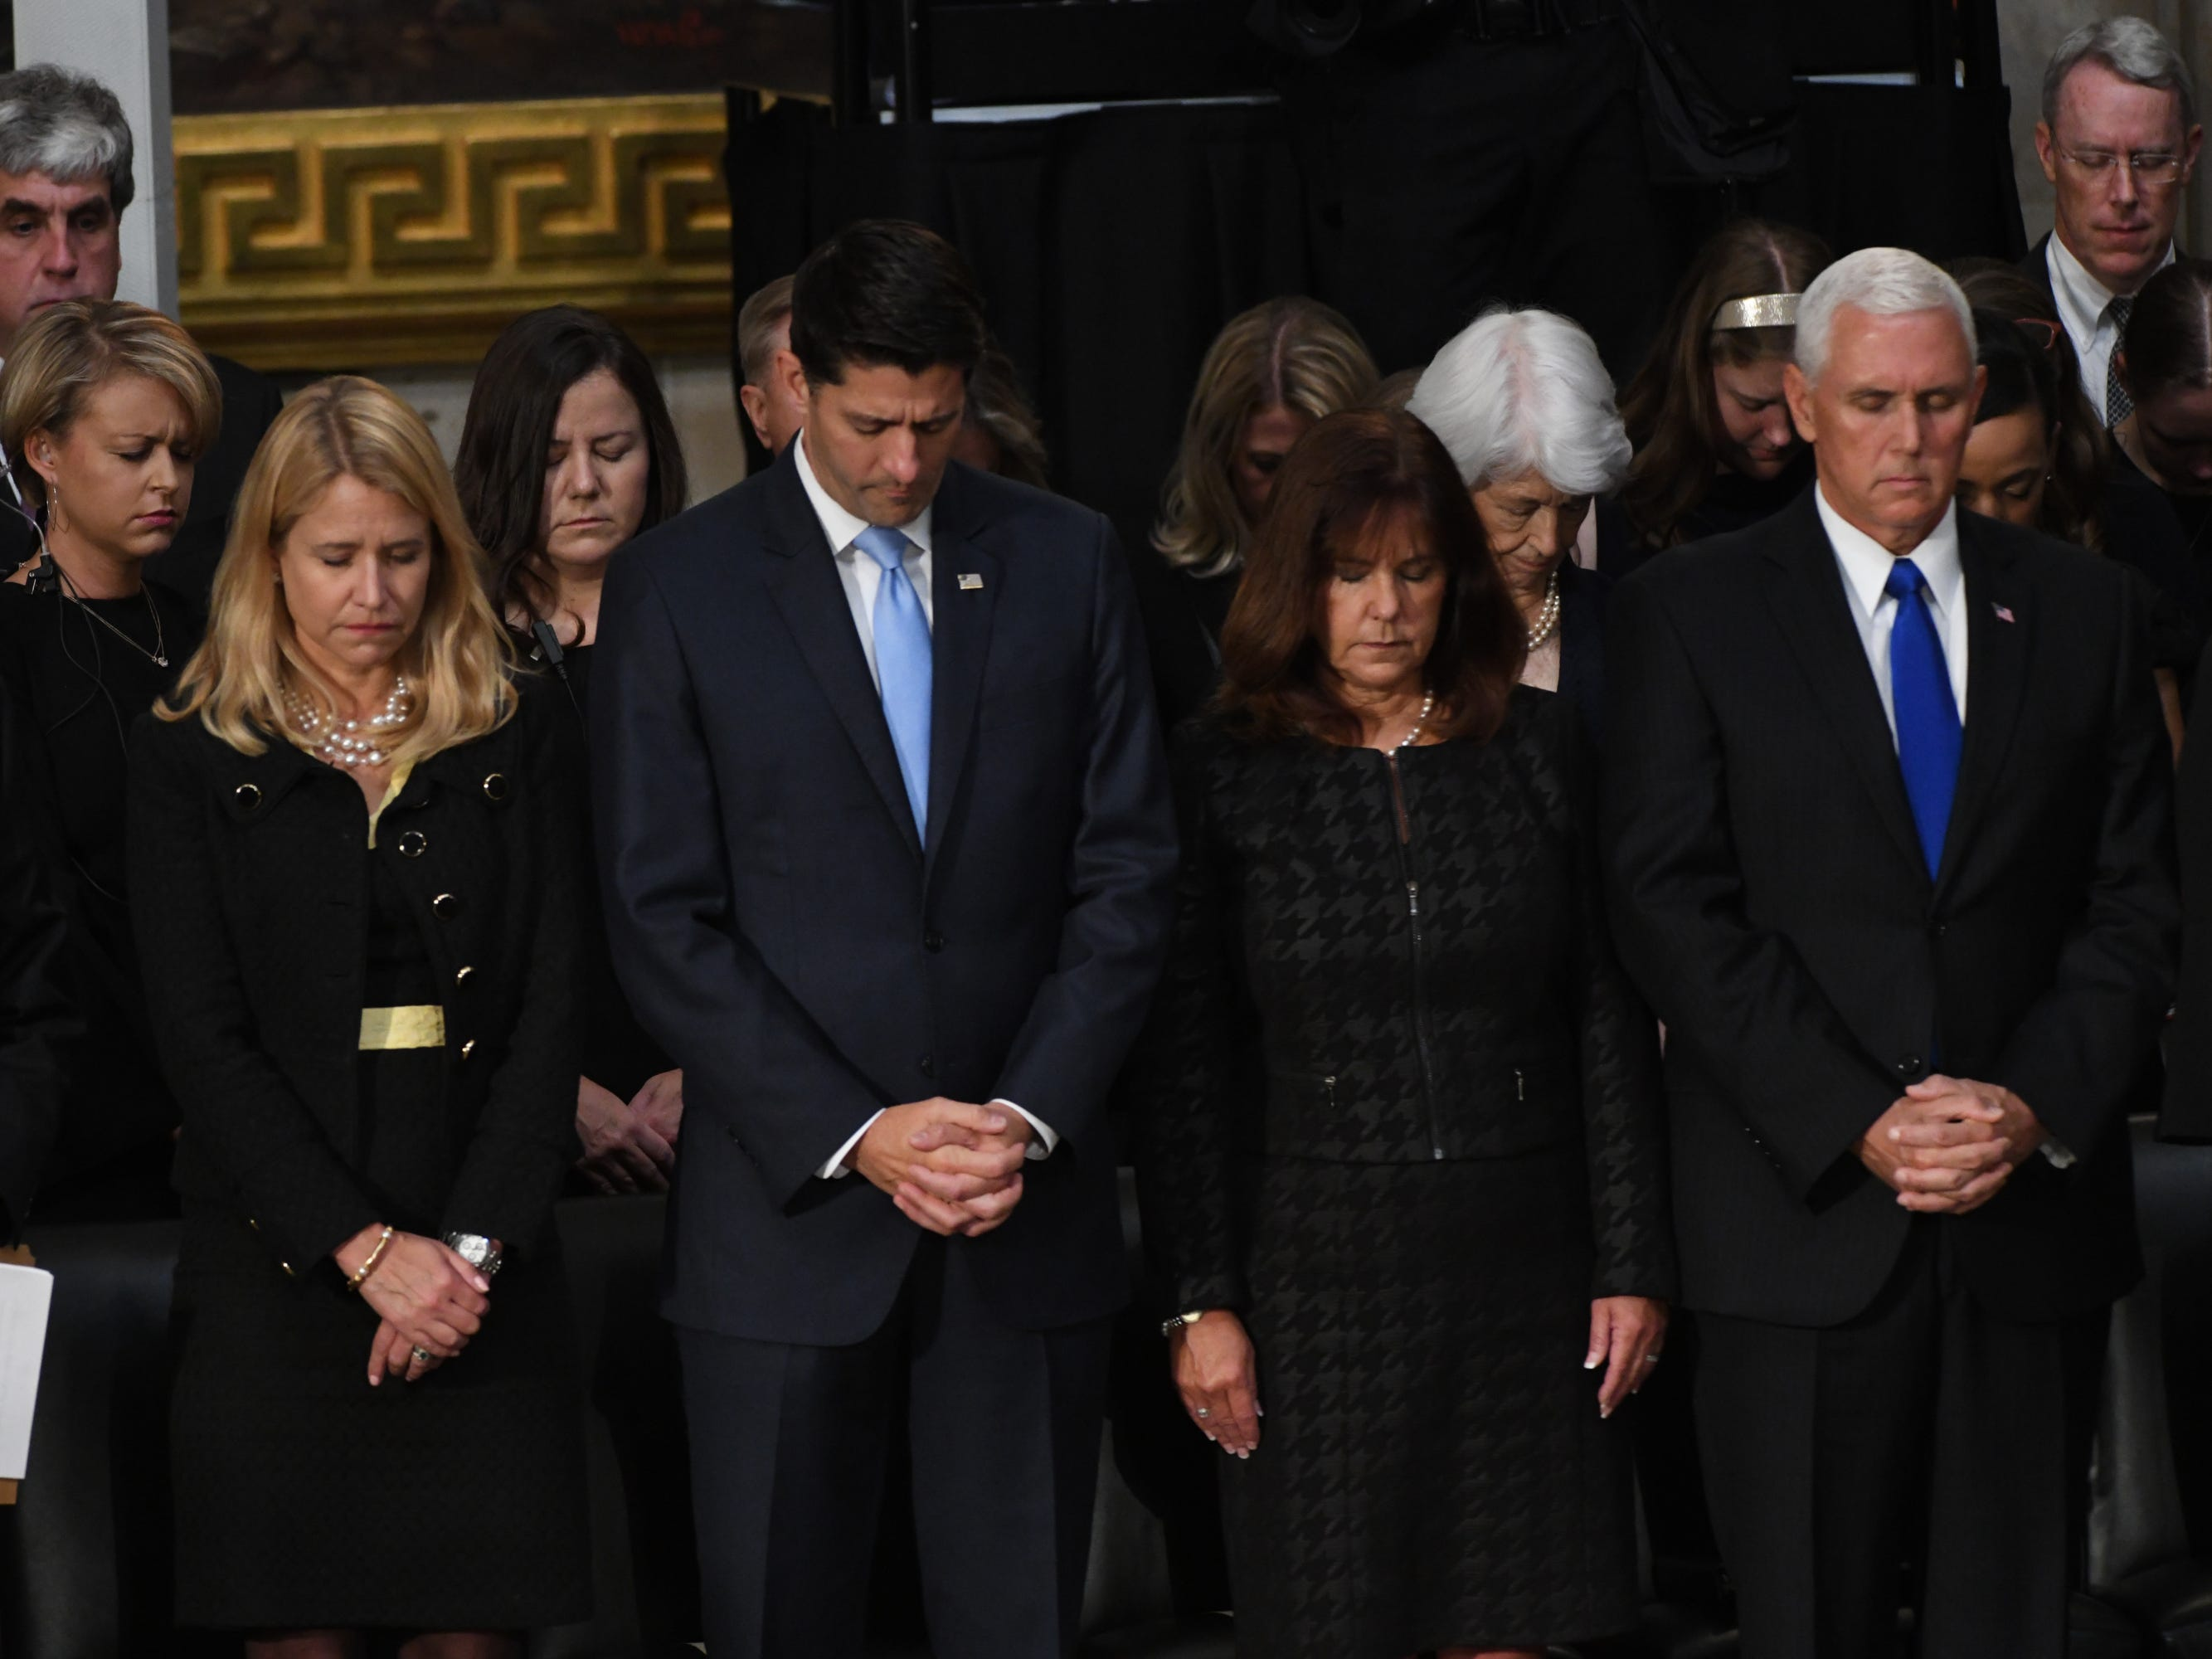 8/31/18 10:55:38 AM -- Washington, DC, U.S.A  -- Sen. Mitch McConnell, Janna and Speaker of the House Paul Ryan, and Vice President Mike Pence stand in prayer as the body of John McCain lies in state at the U.S. Capitol in Washington on Aug. 31, 2018 in Washington. Sen. McCain died on Aug. 25. --    Photo by Jasper Colt, USA TODAY Staff ORG XMIT:  JC 137436 McCain U.S. Capi 8/31/2018 (Via OlyDrop)